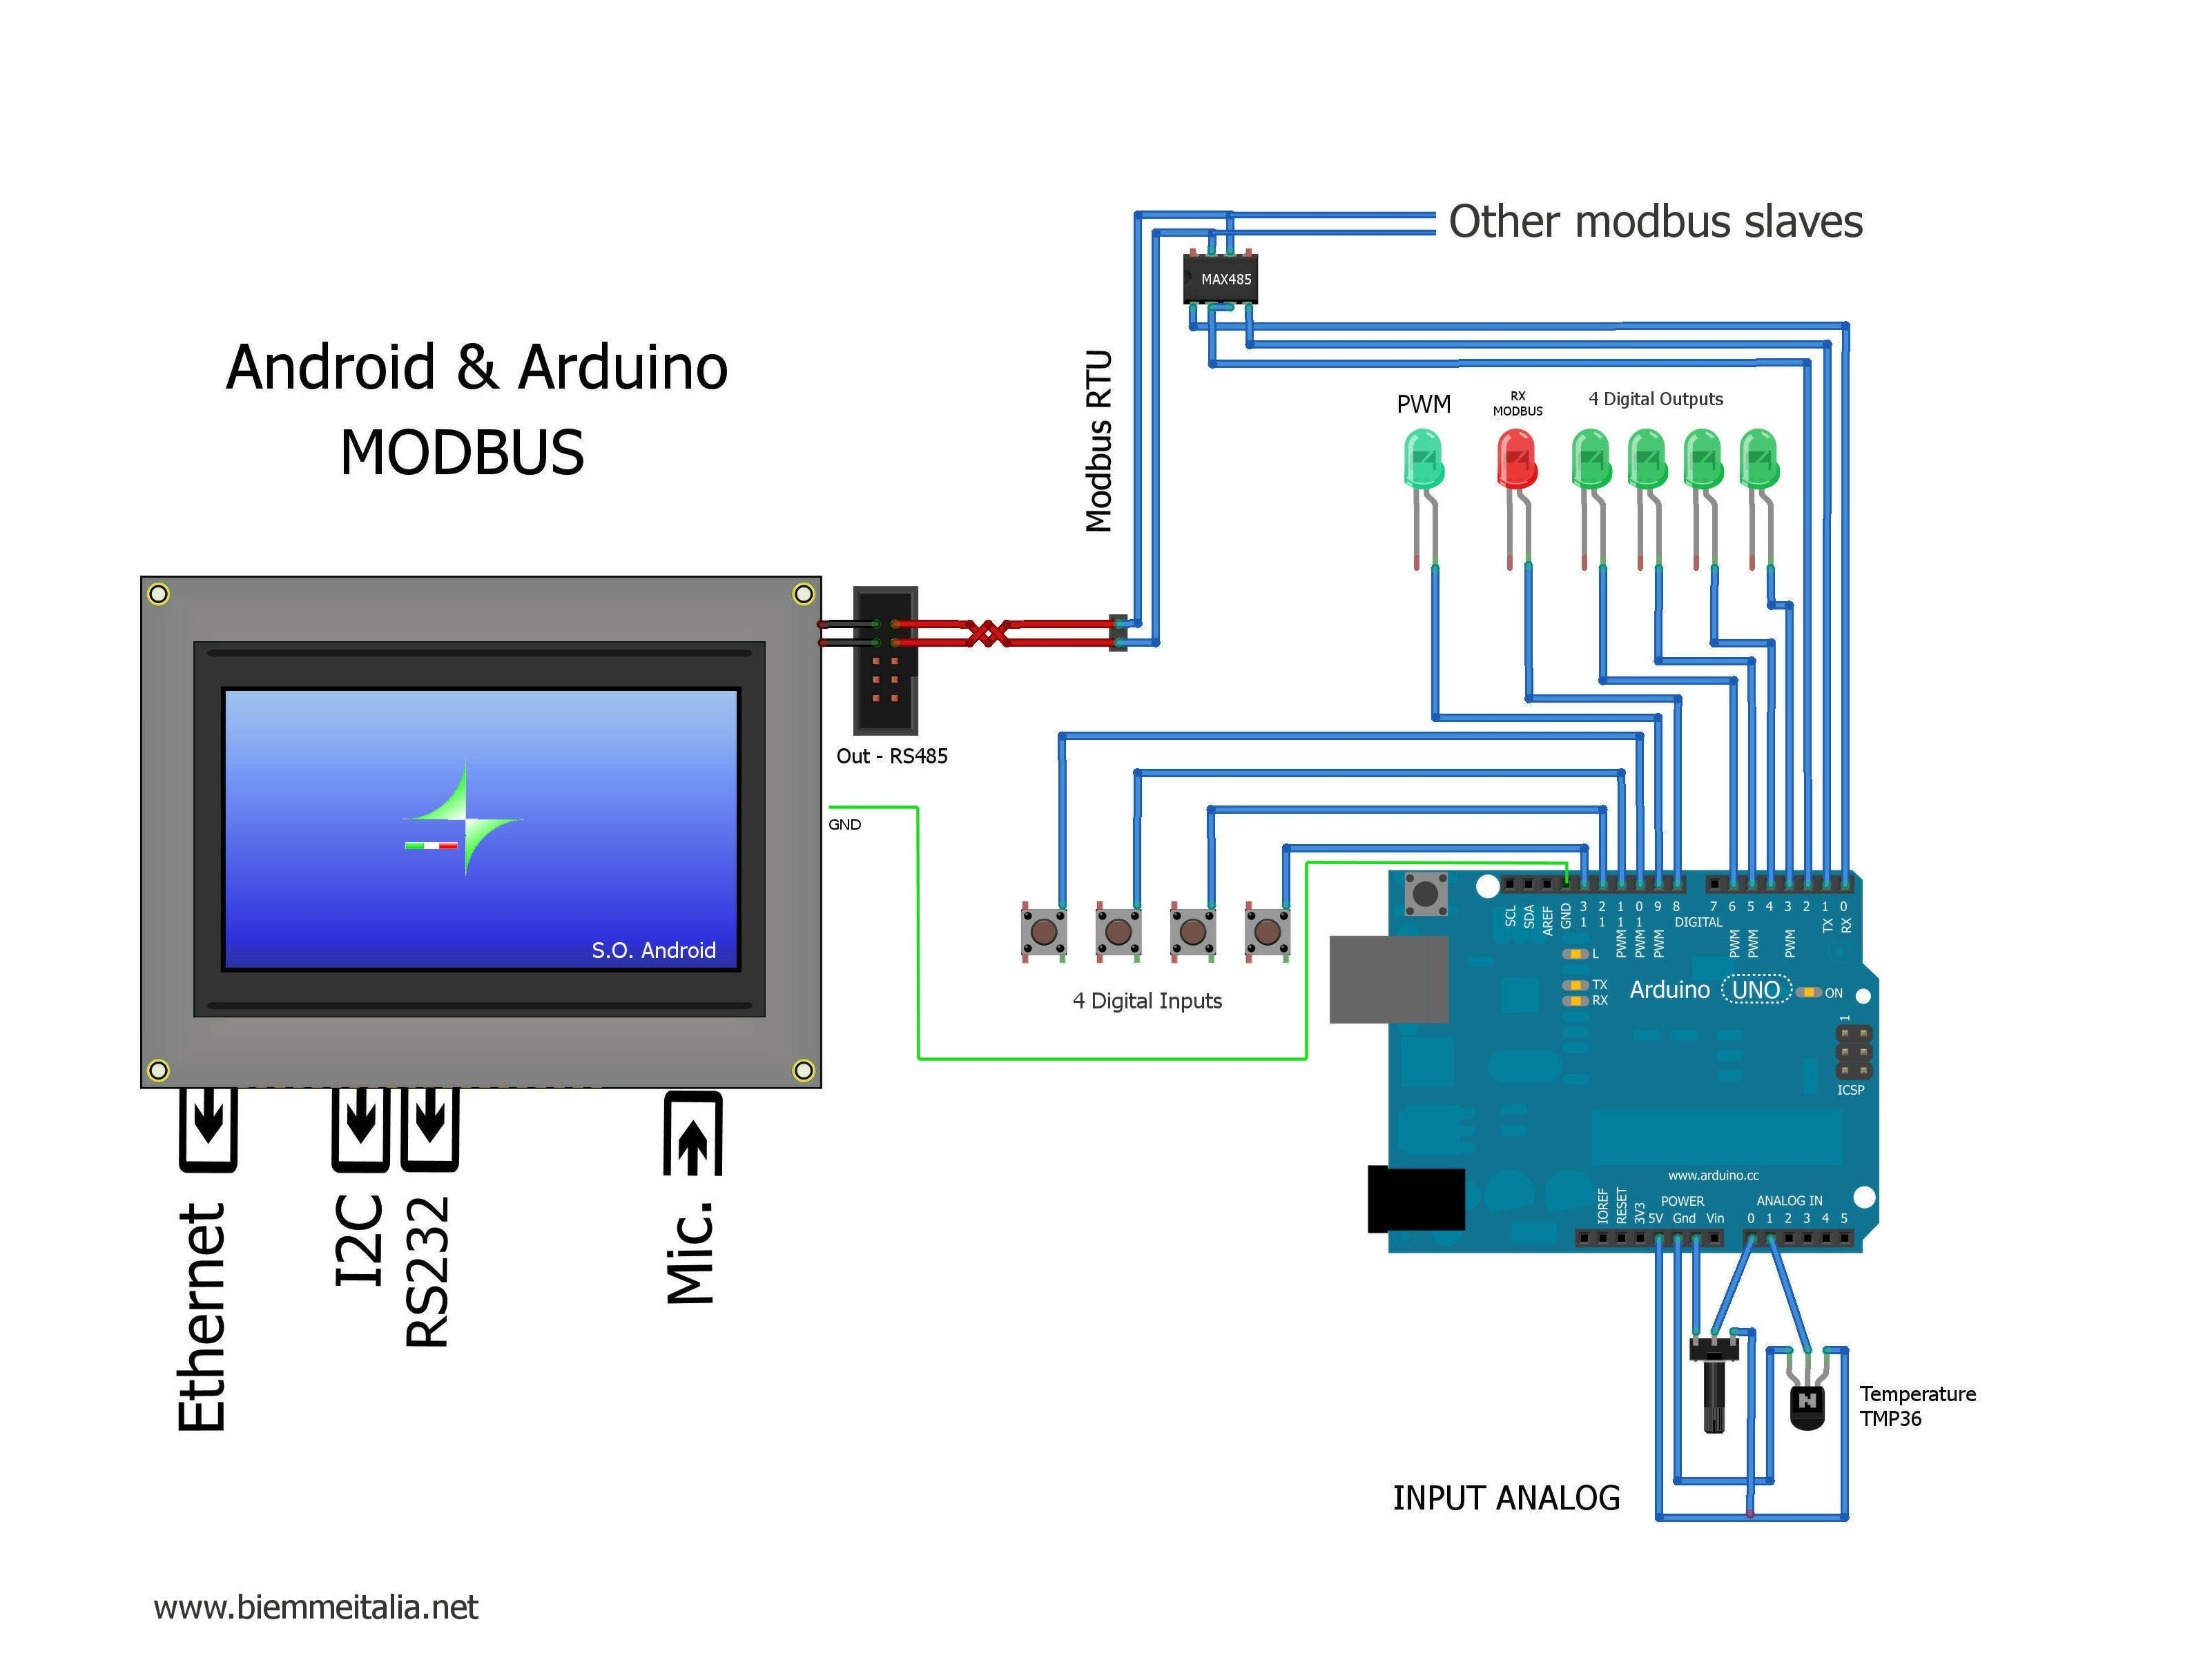 Modbus Rs485 Wiring Diagram android Arduino Munication Via Modbus Rs485 Of Modbus Rs485 Wiring Diagram